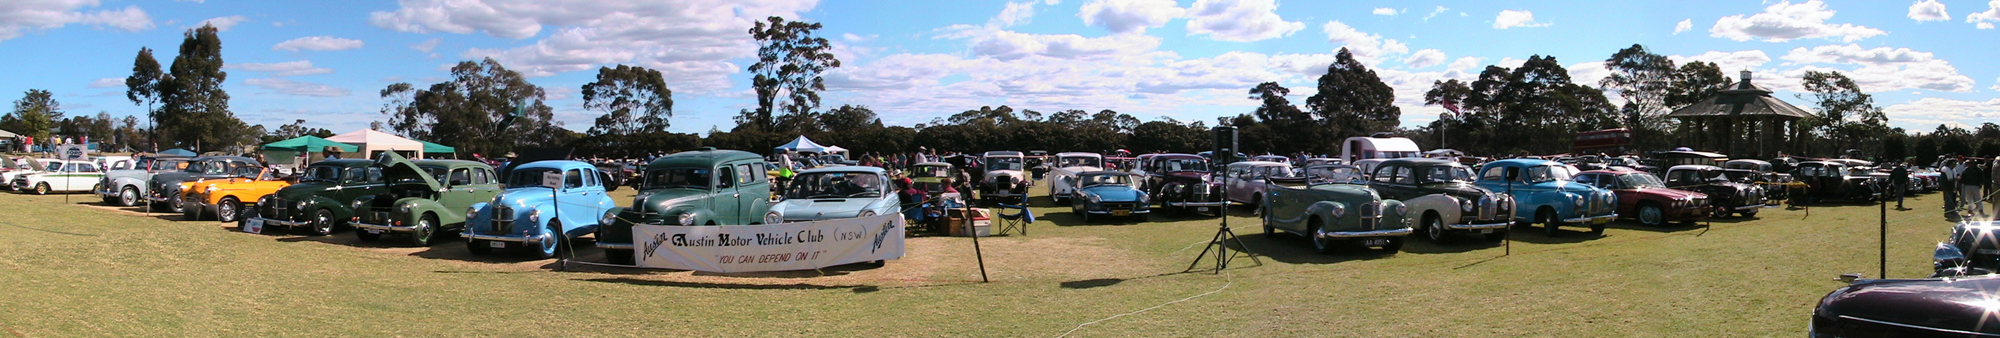 Austin Motor Vehicle Club NSW display at the all British Day held at Kings School